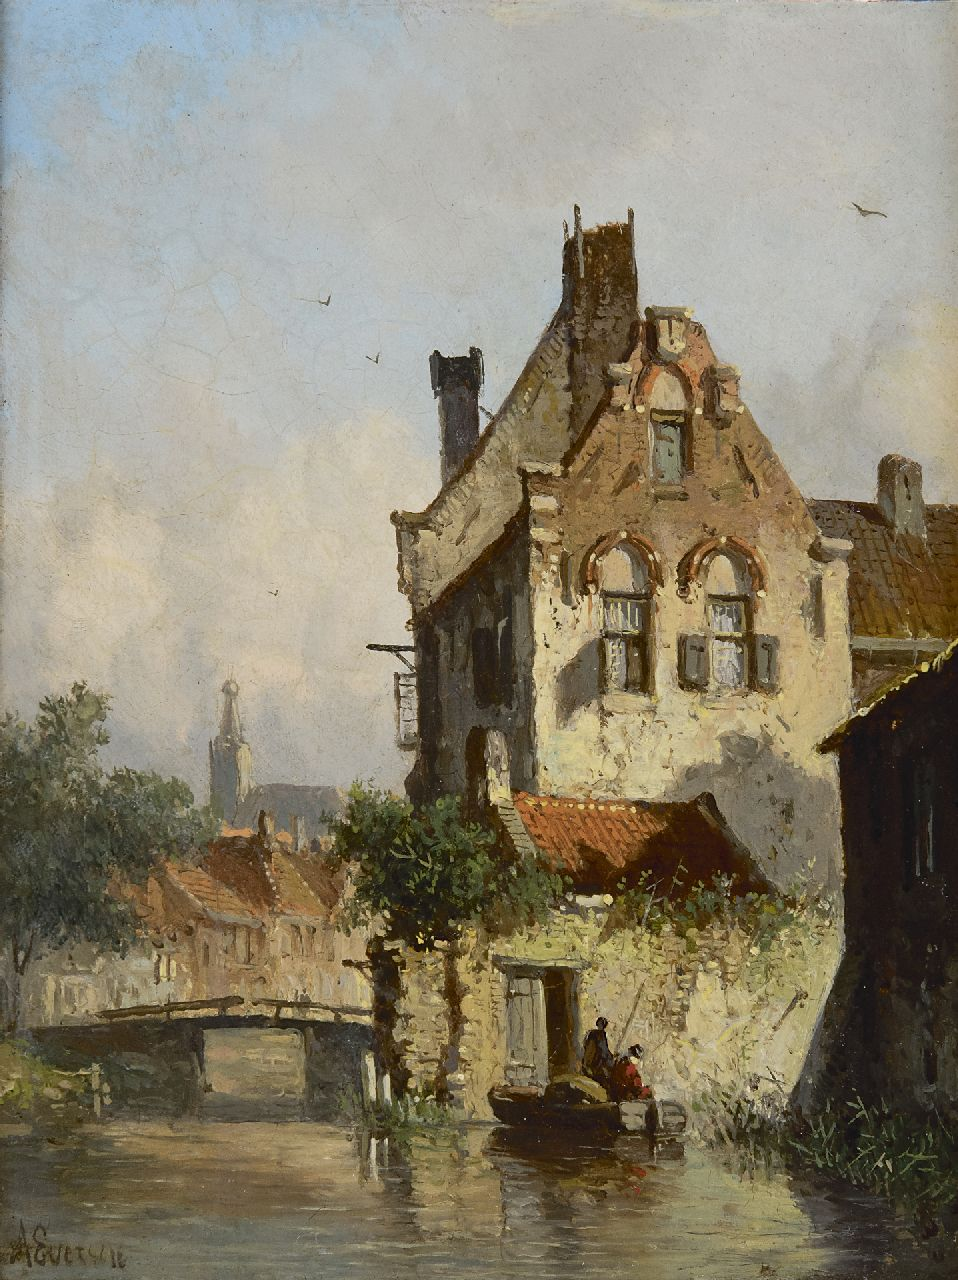 Eversen A.  | Adrianus Eversen, Anglers in a canal, in summer, oil on panel 19.0 x 14.9 cm, signed l.l.